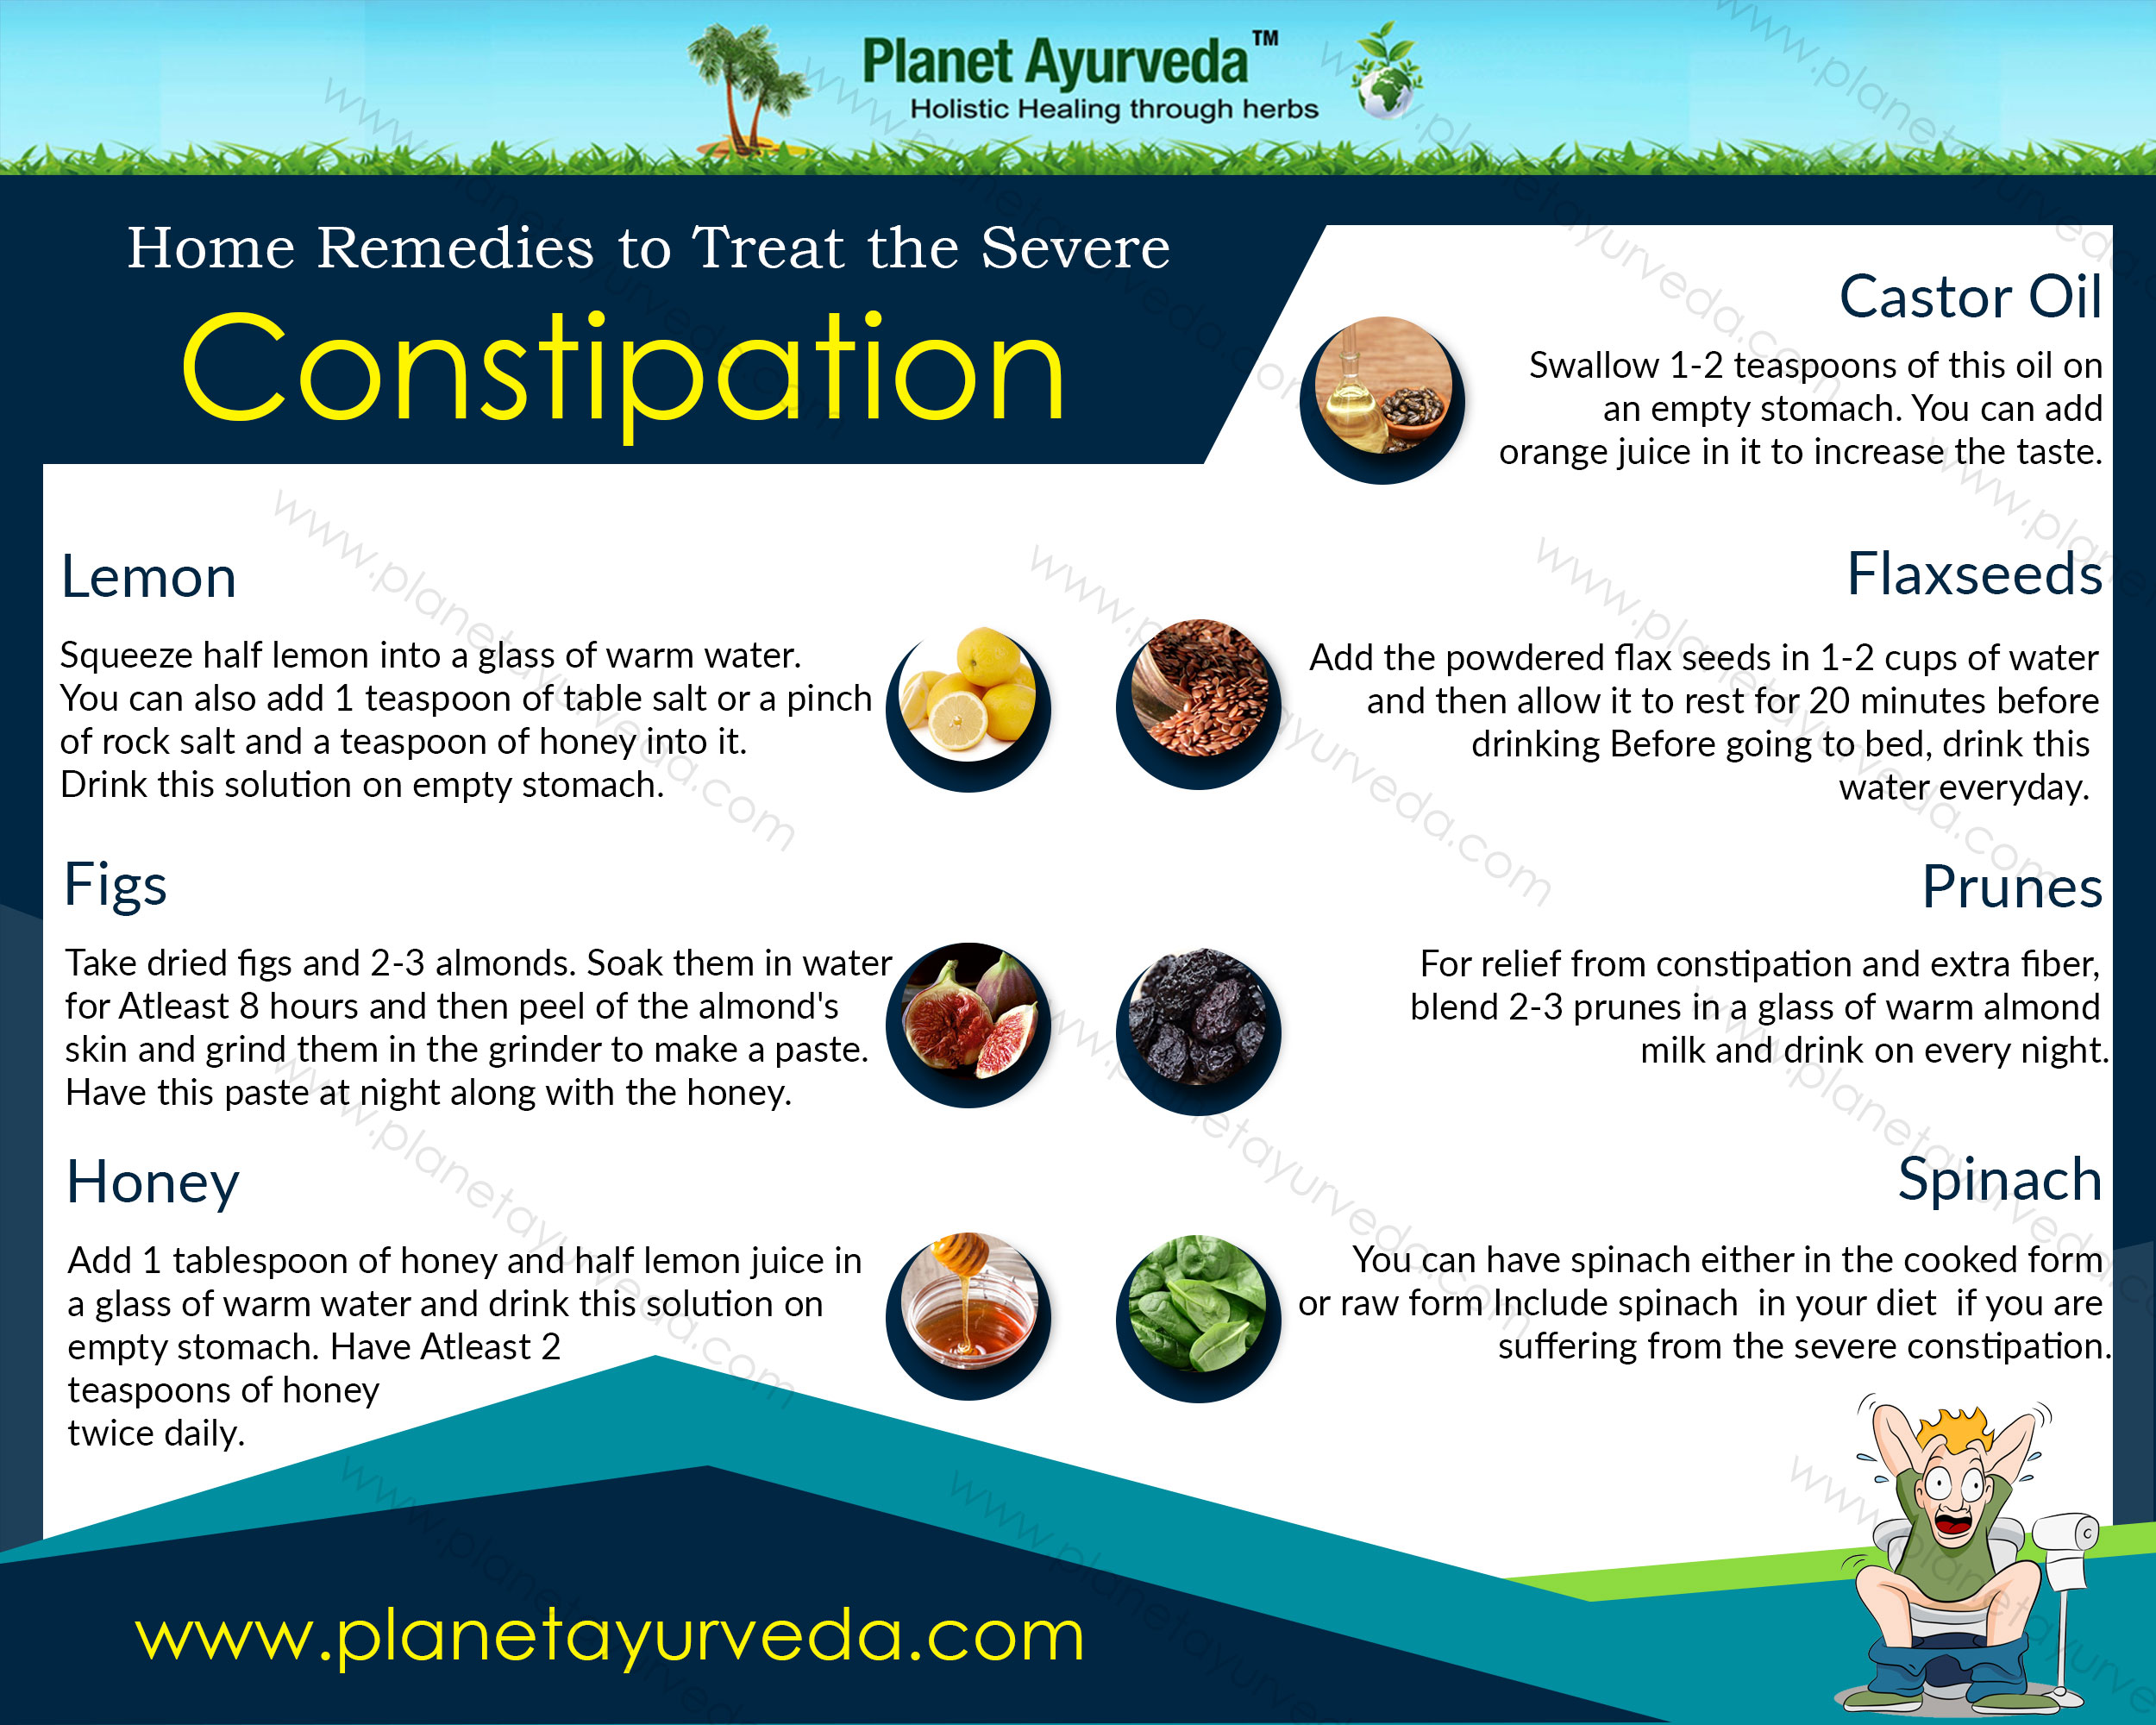 Home Remedies to Treat the Severe Constipation